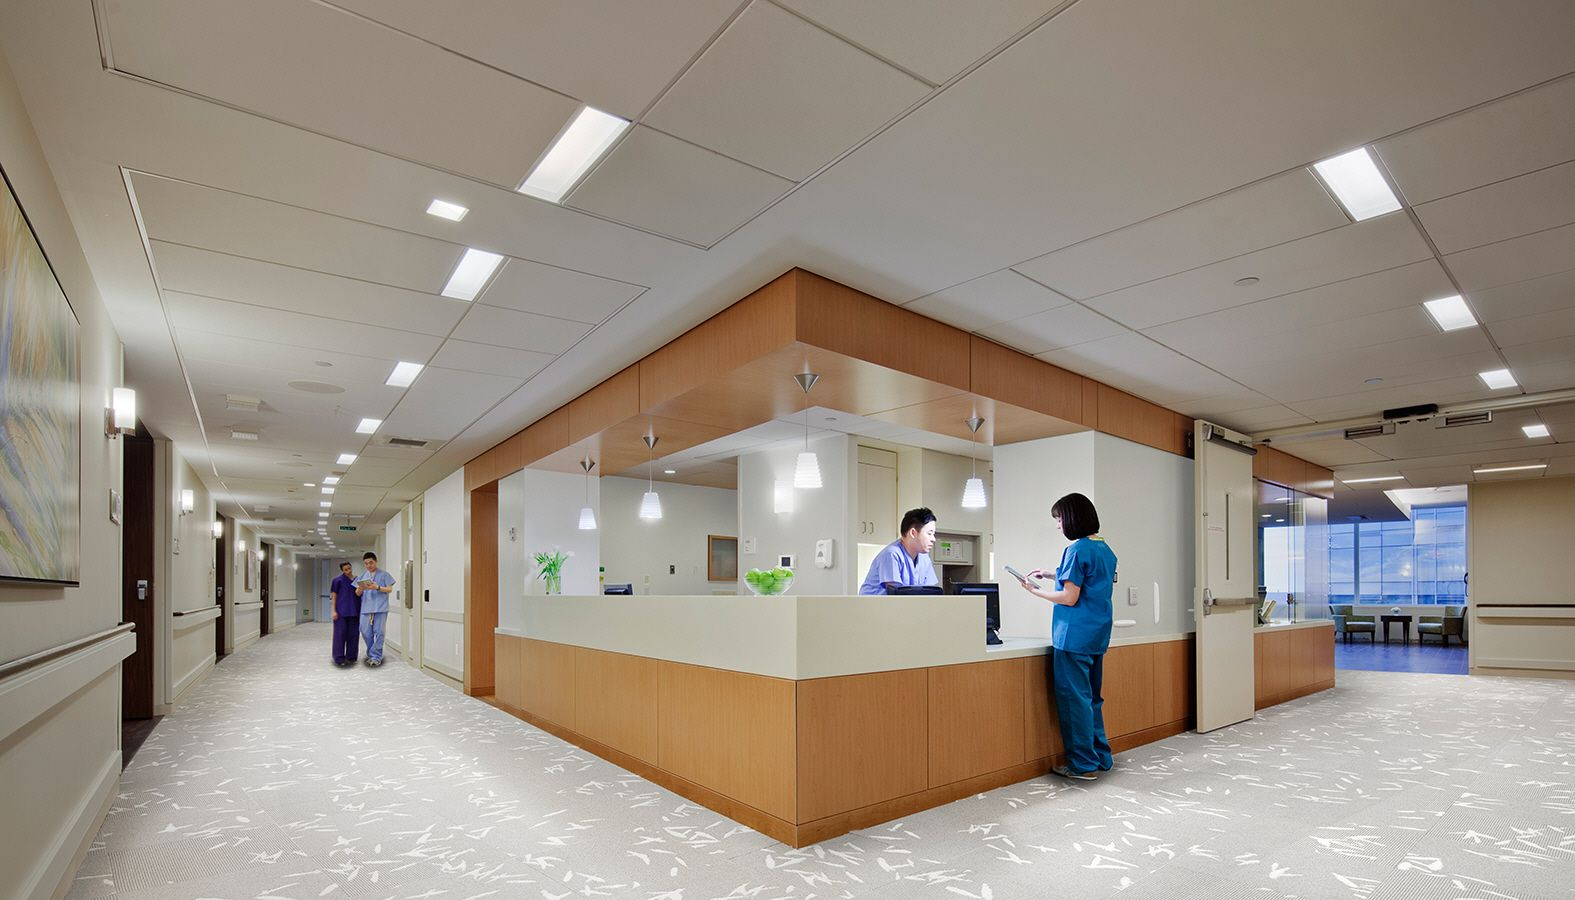 A Curved Glass Facade Gives This Women S Hospital A Generous And Expansive Appearance And Its S Hospital Interior Design Hospital Design Medical Office Design